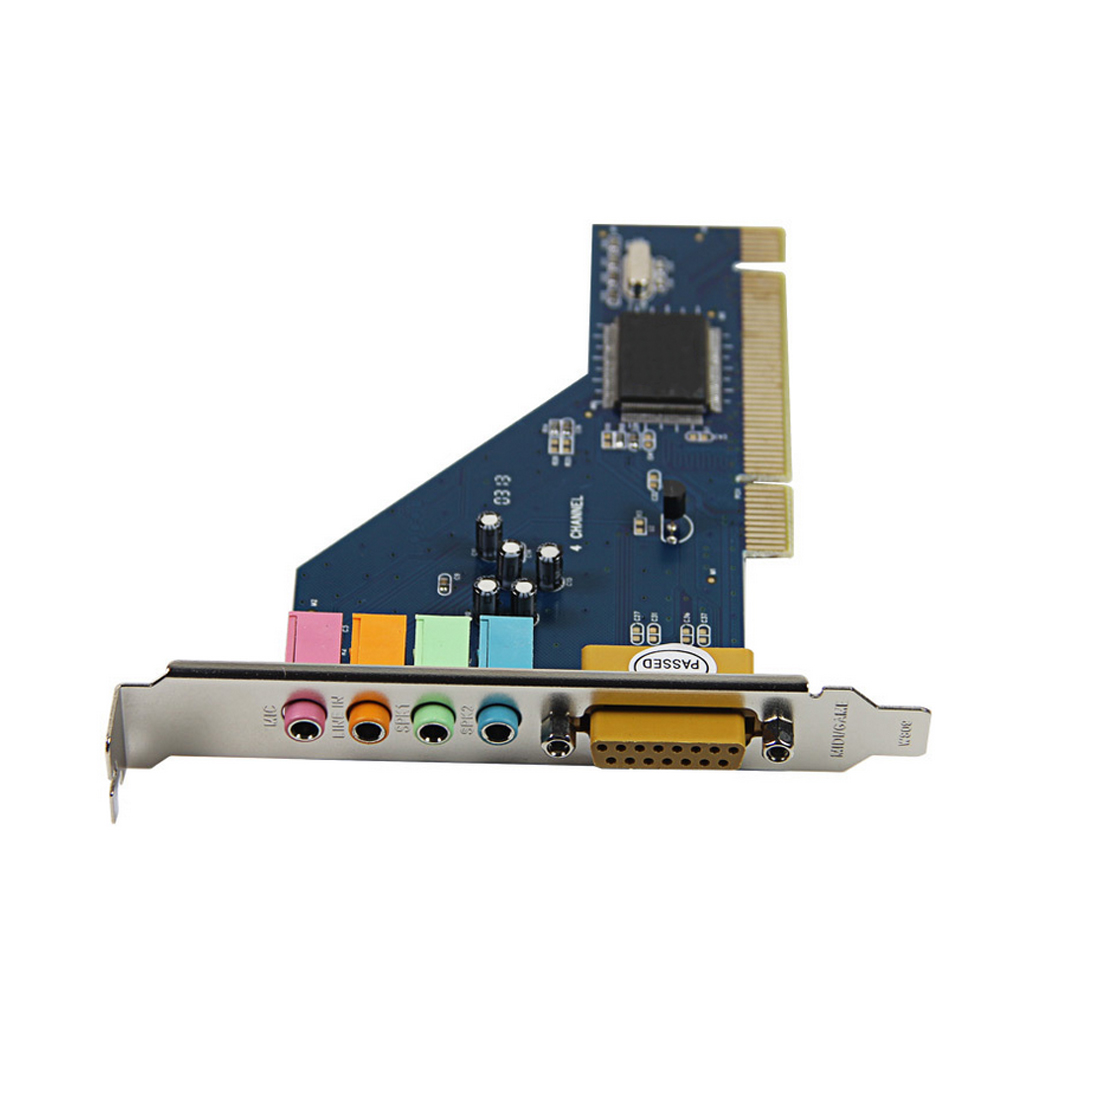 NOYOKERE Hot Sale High Quality 4 Channel 8738 Chip 3D Audio Stereo PCI Sound Card for Win7 64 Bit ess 4 1 channel pci sound card red